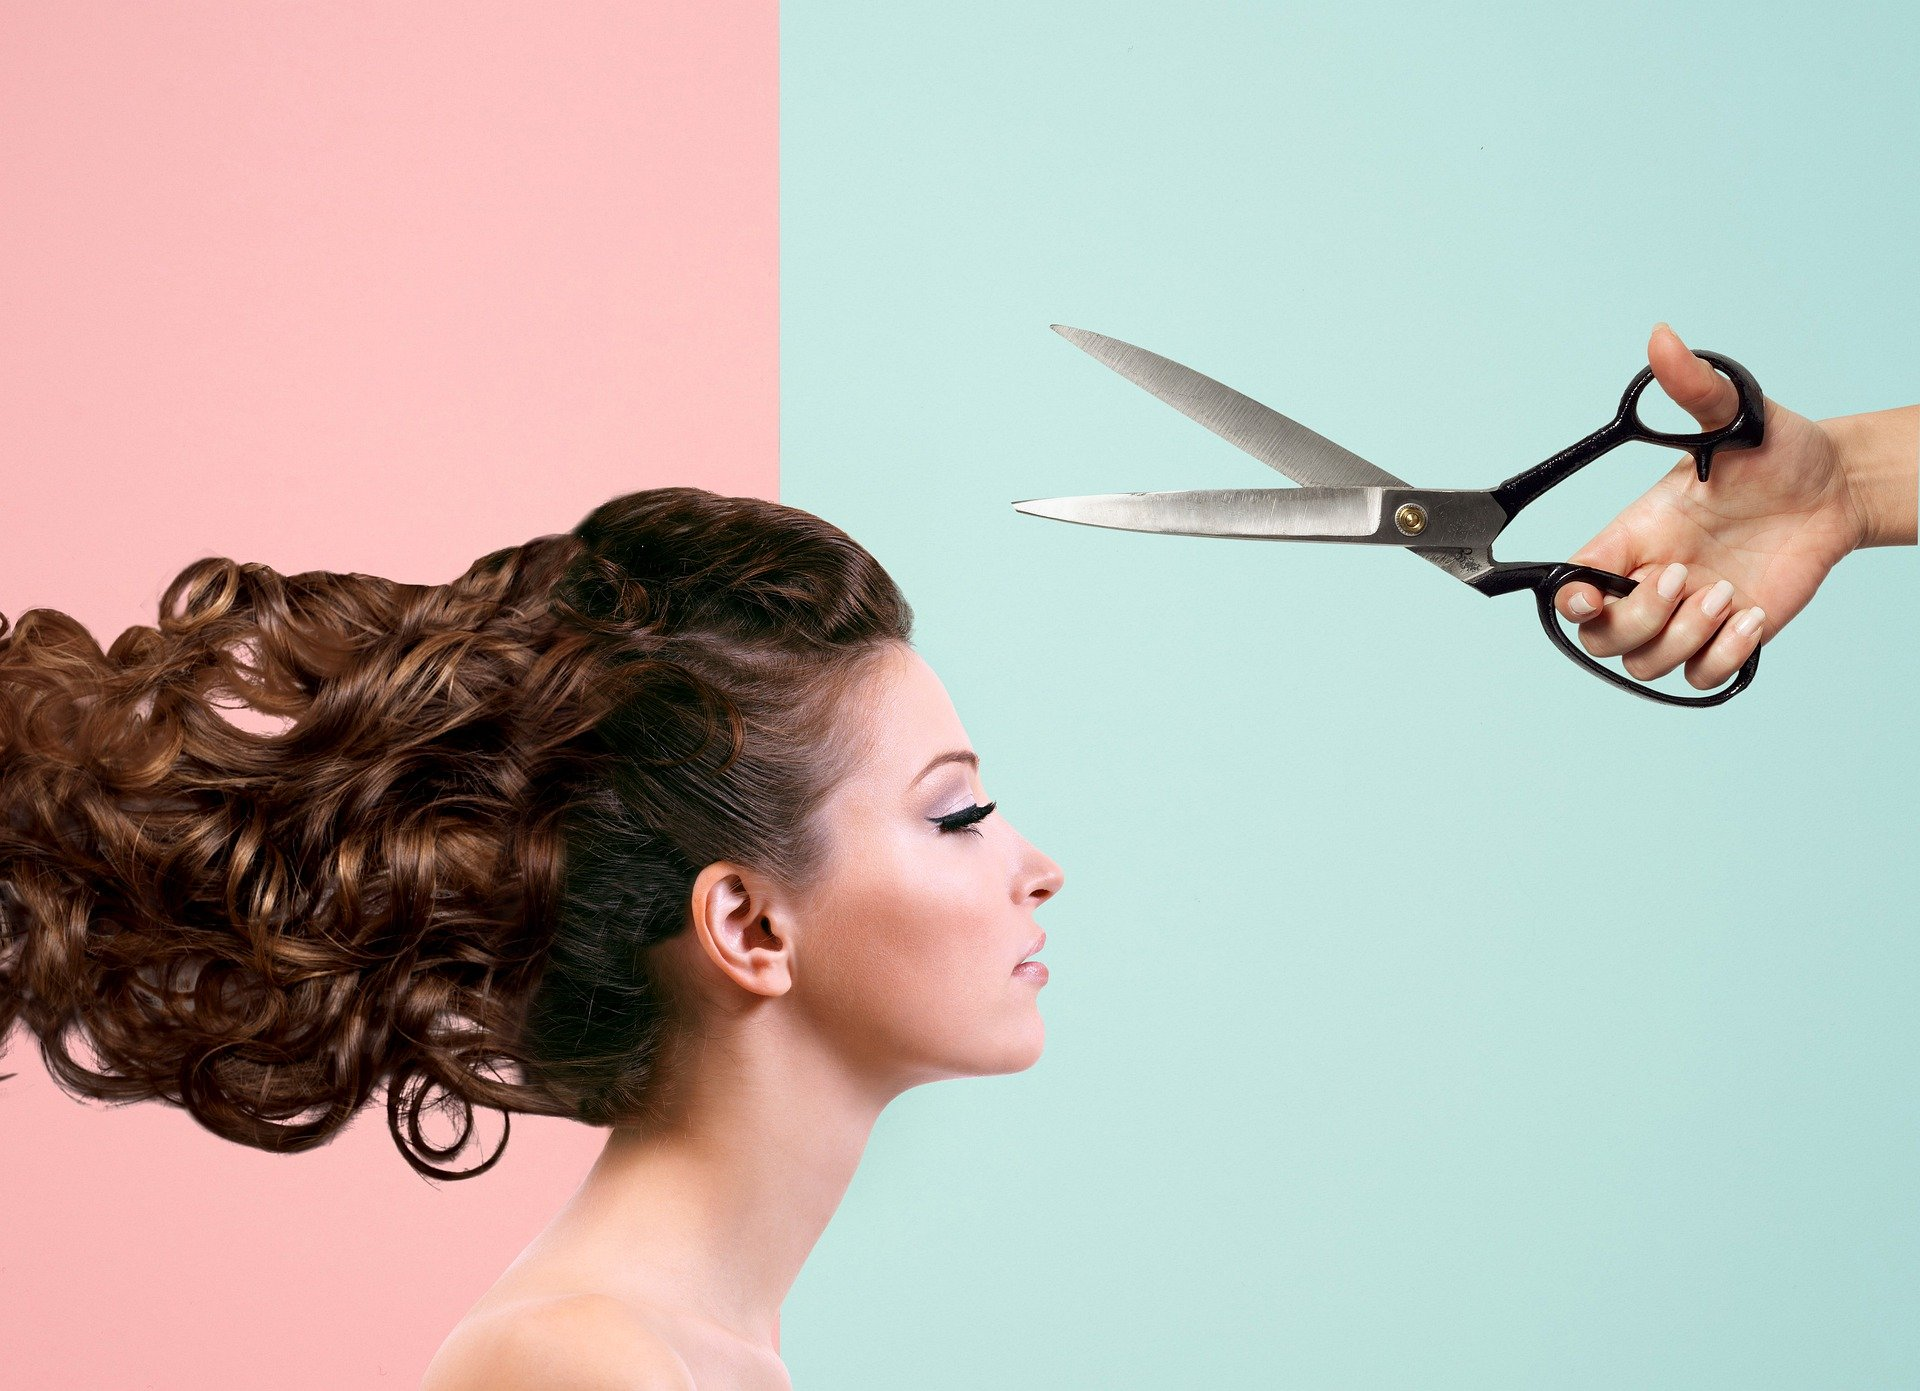 Woman and scissors